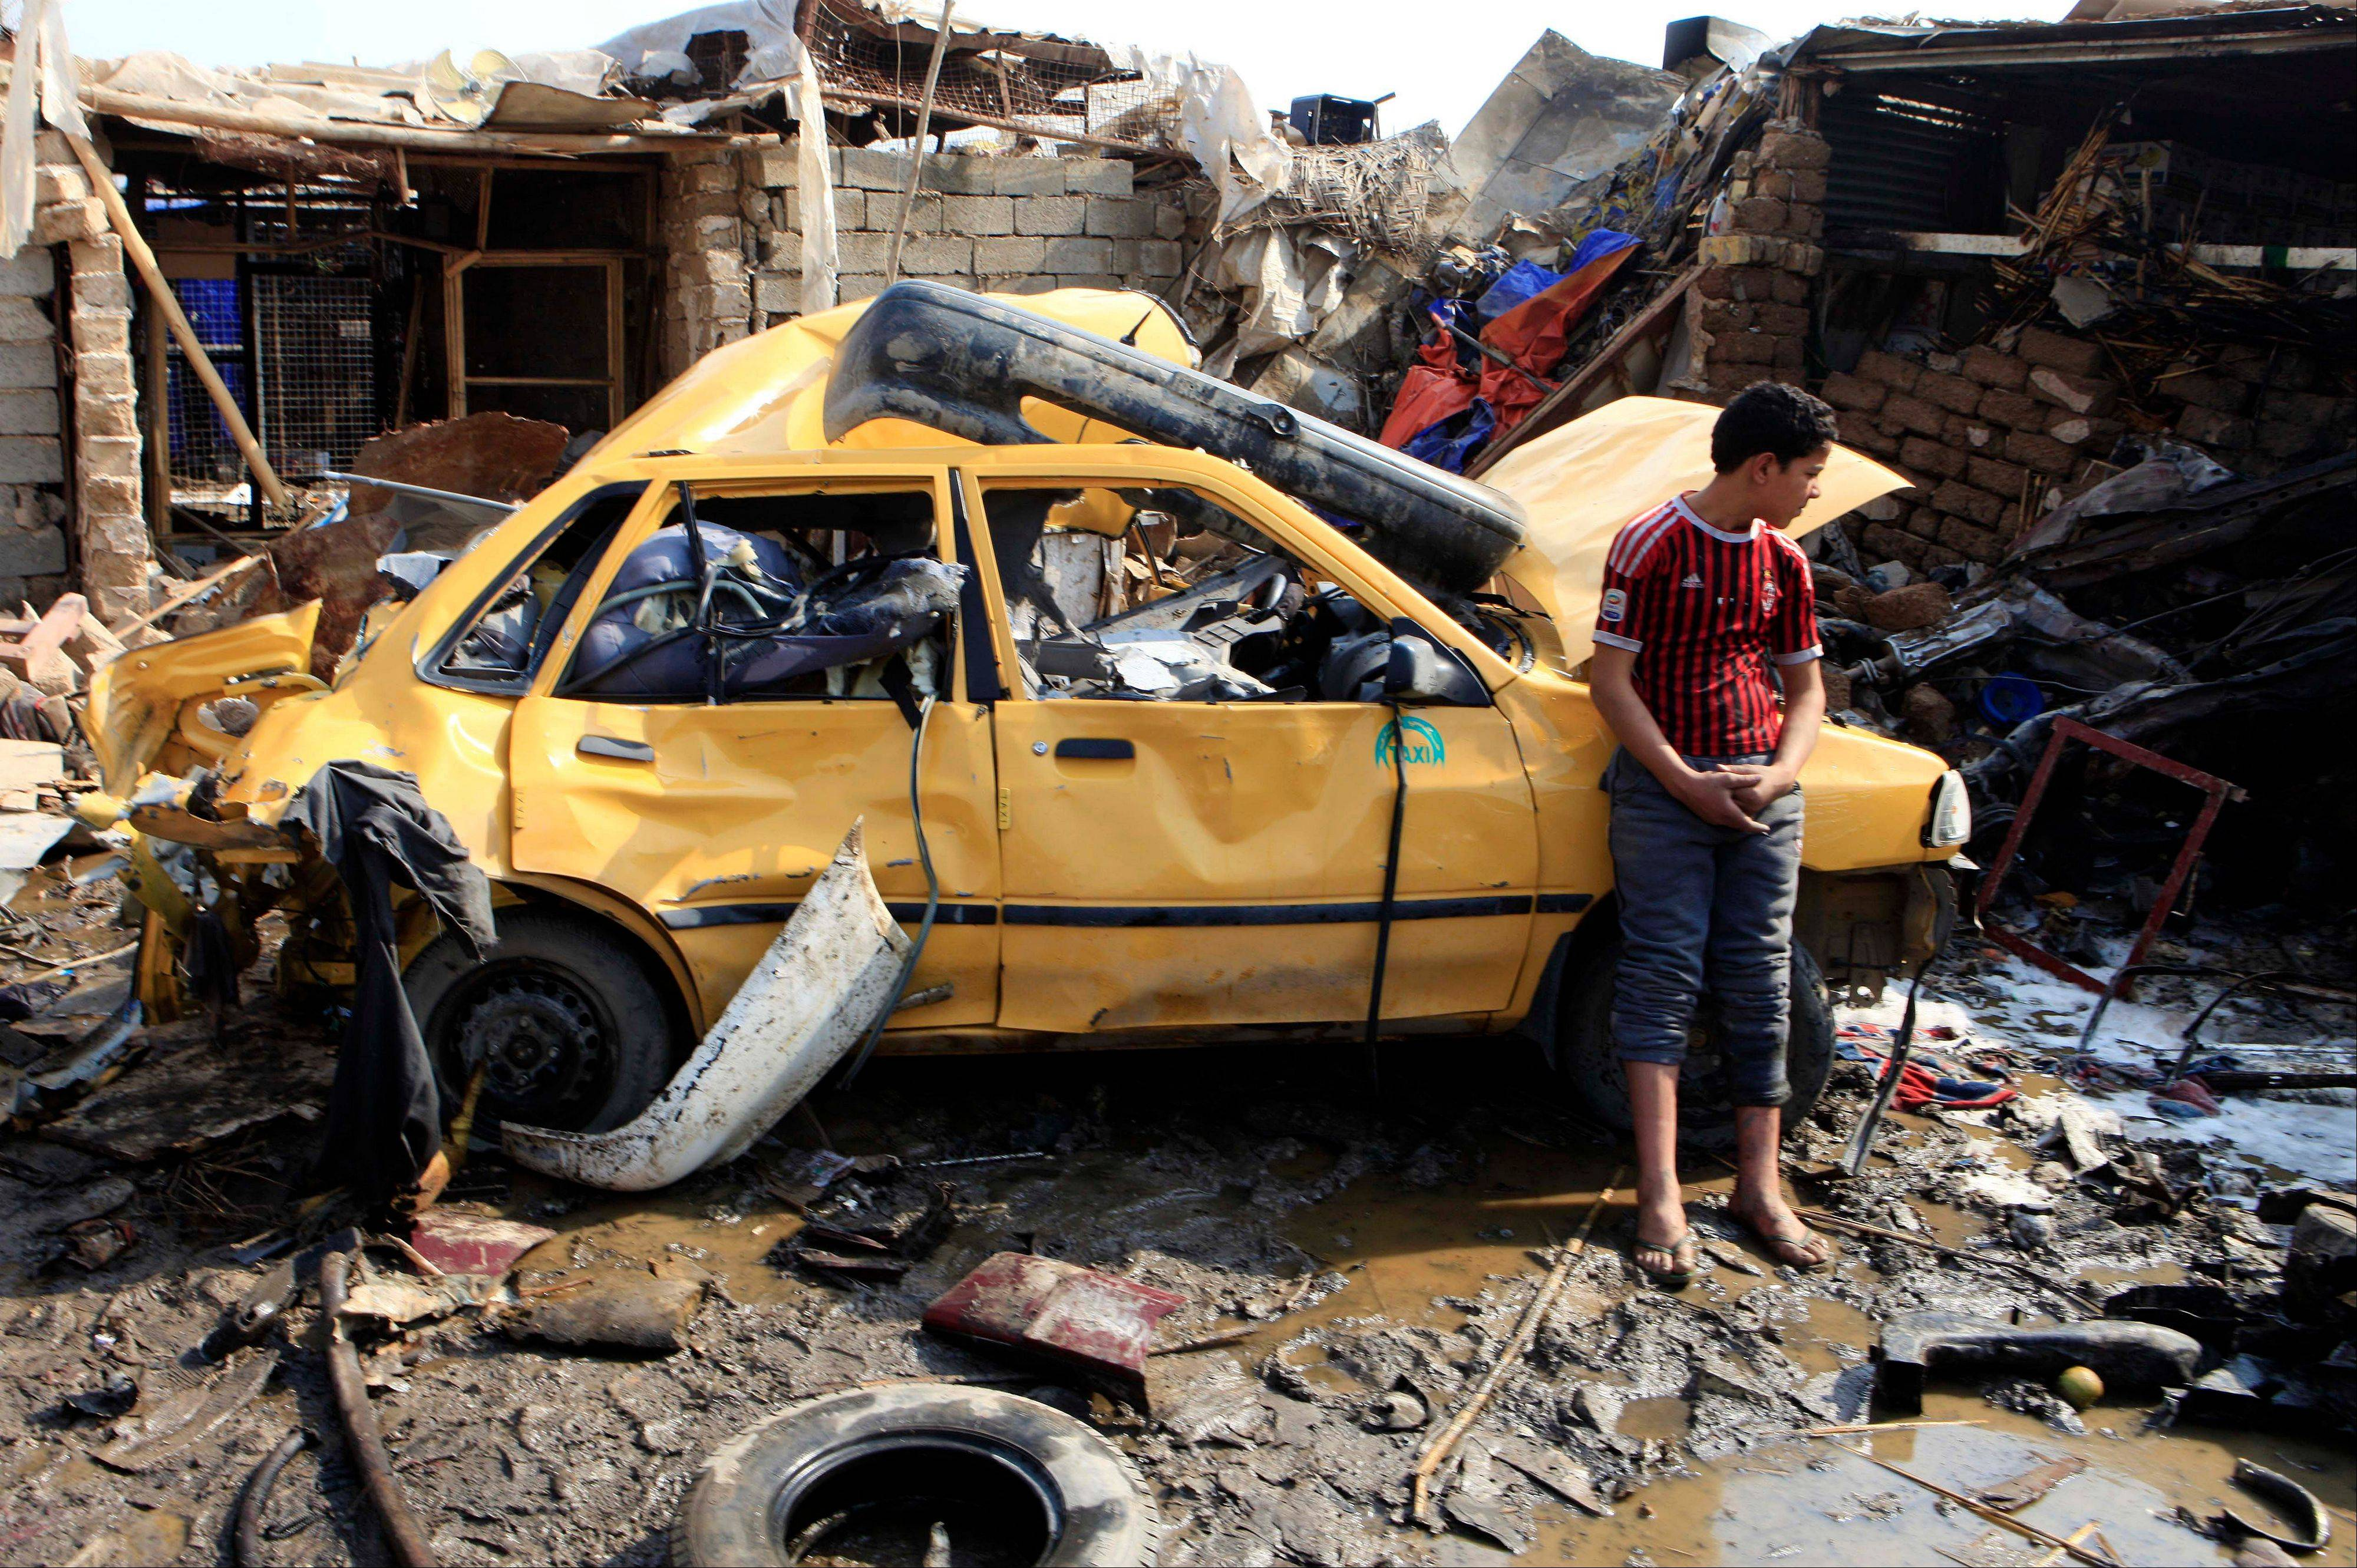 An Iraqi boy stands near a destroyed car at the scene of a car-bomb attack in Baghdad�s northern Kazimyah neighborhood, Friday, Feb. 8, 2013. Car bombs struck two outdoor markets in Shiite areas of Iraq on Friday, killing and wounding scores of people, police said.